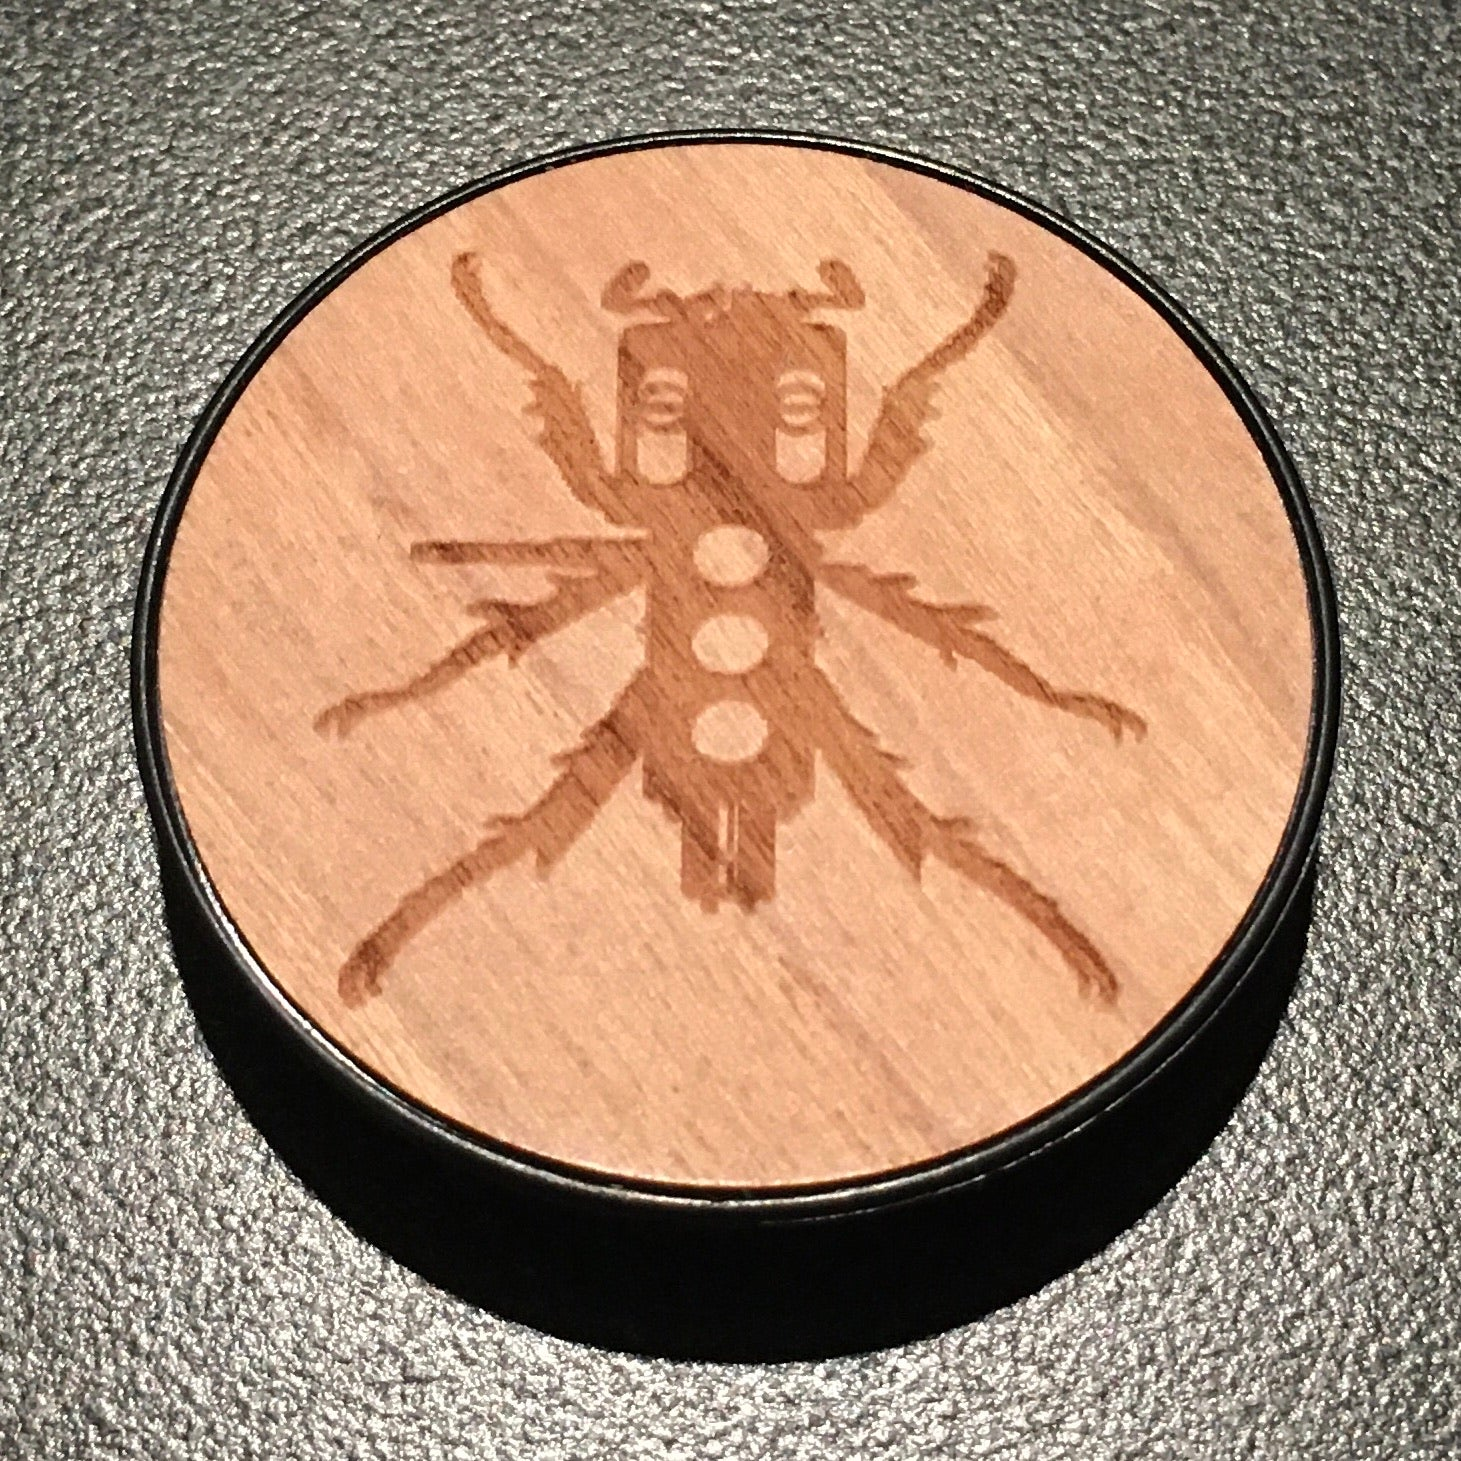 Beedle Wood Pop Socket